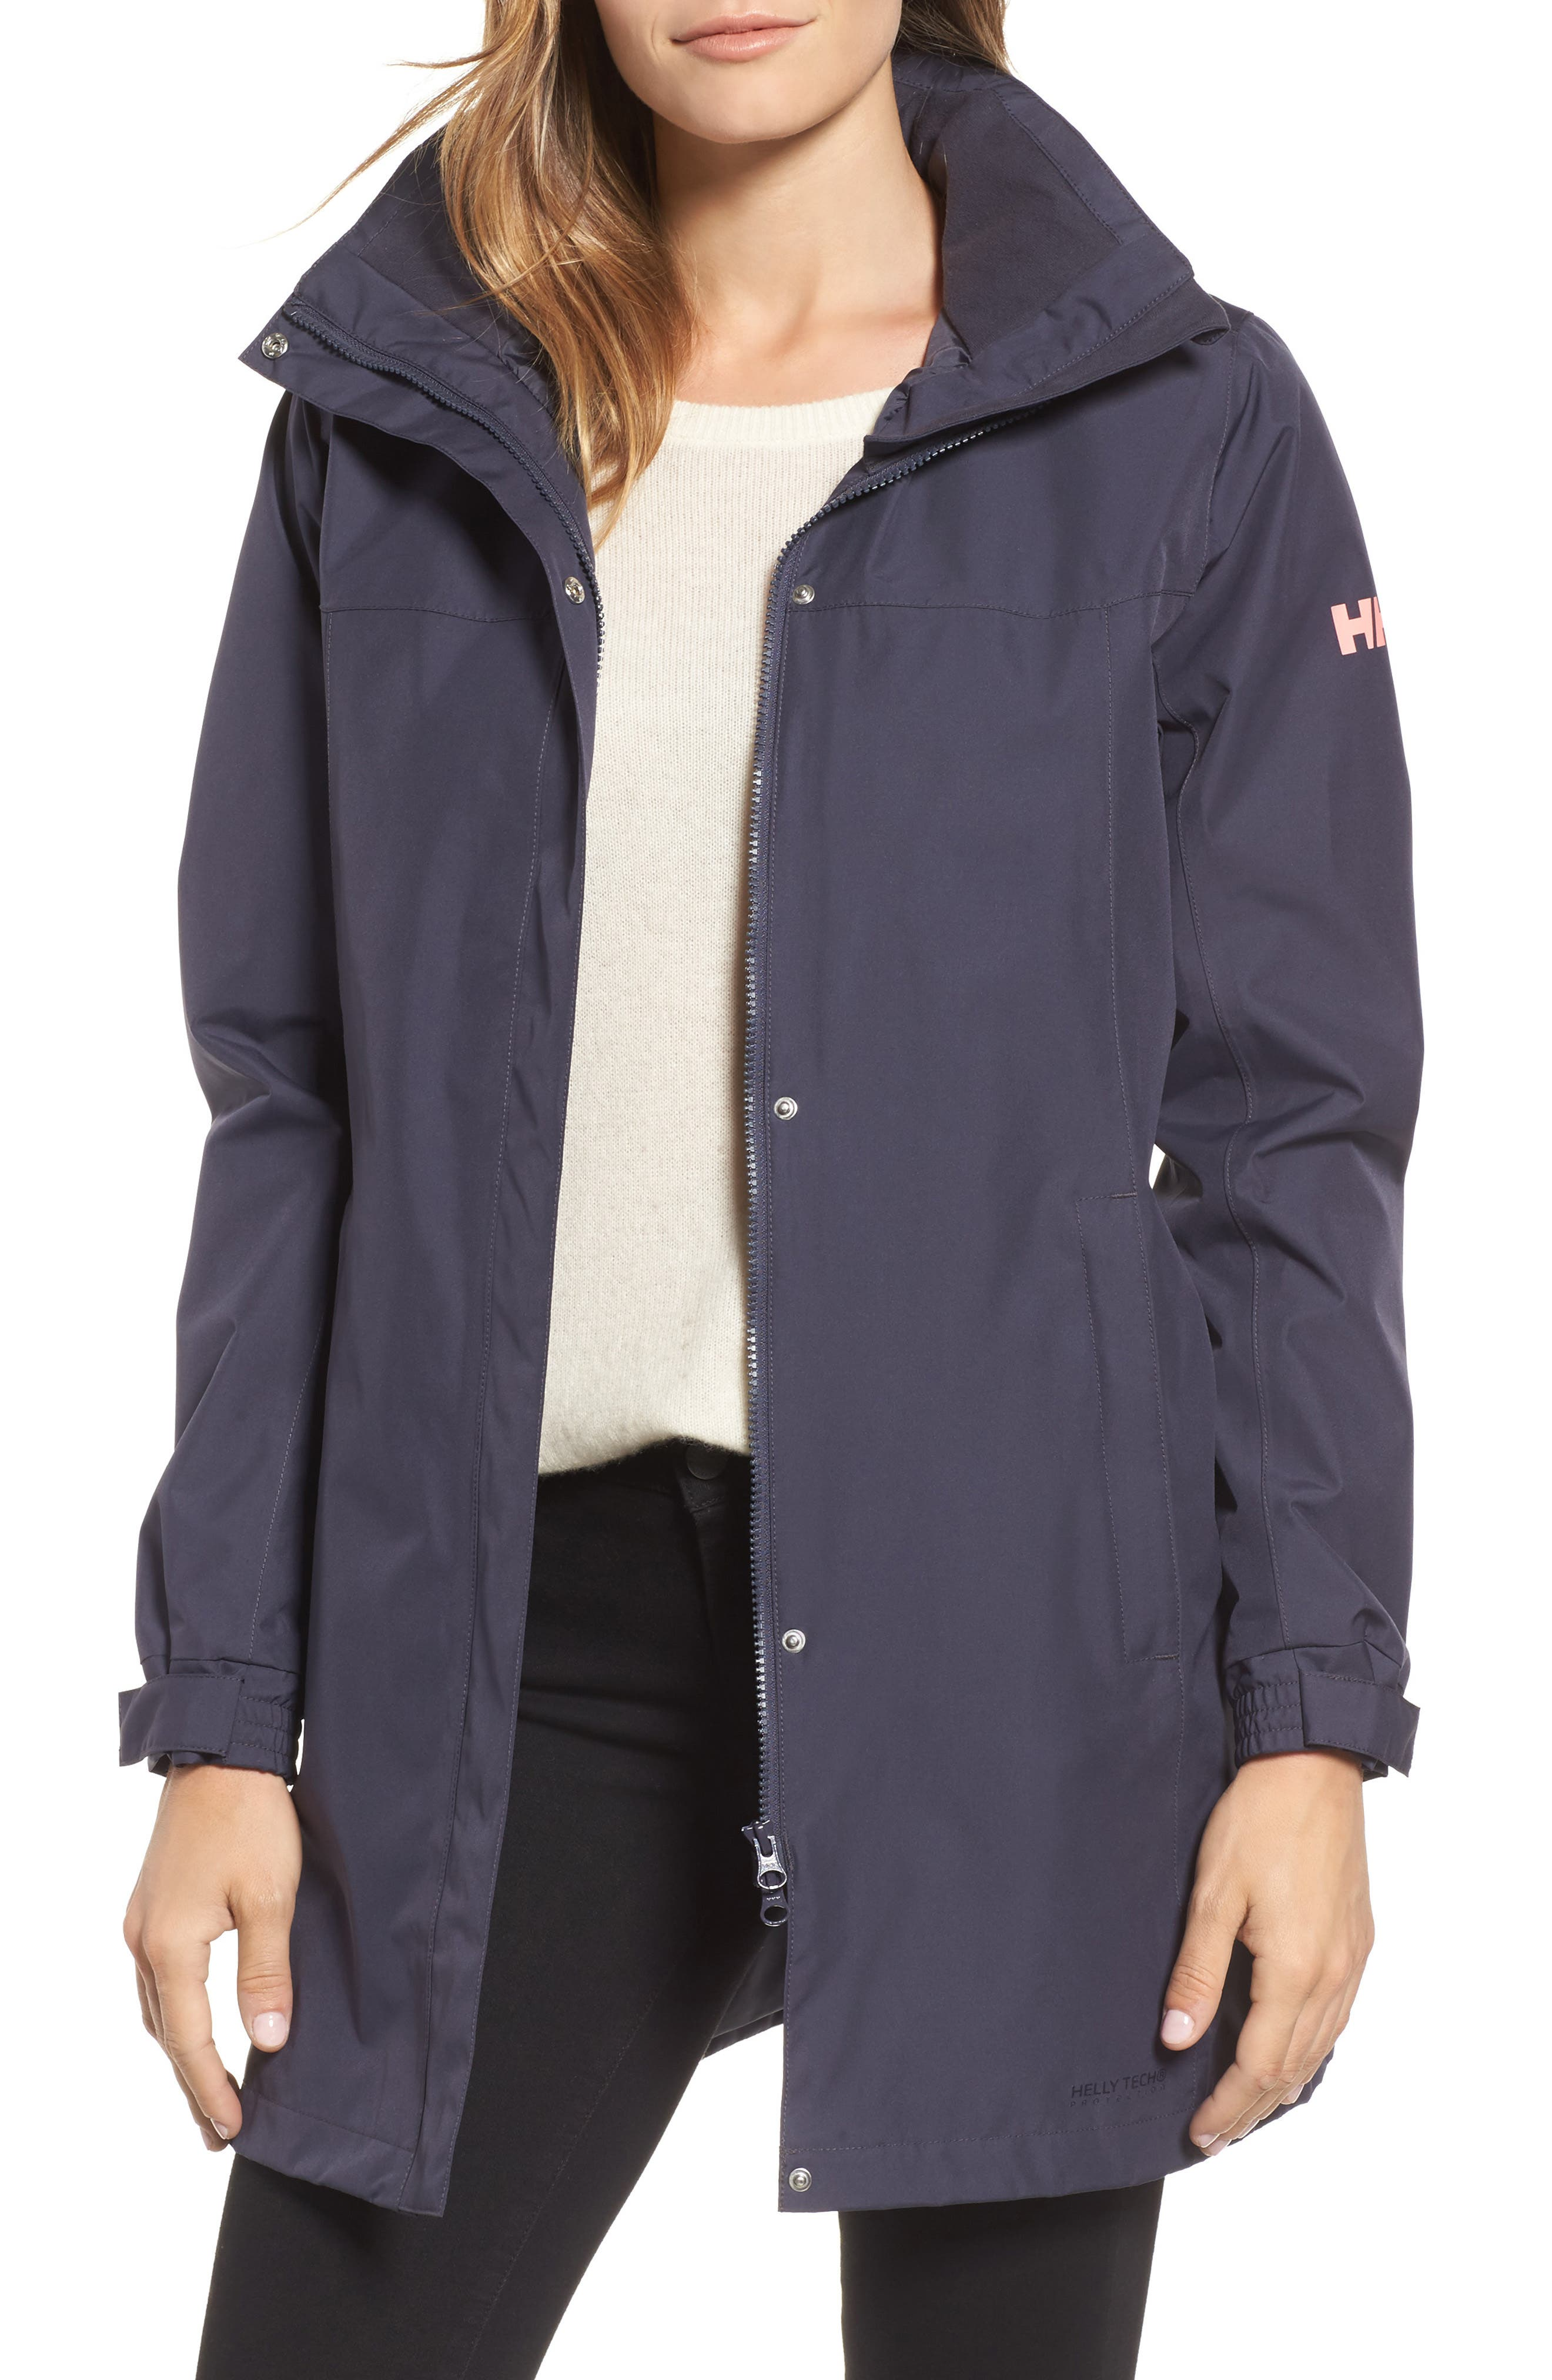 Alternate Image 1 Selected - Helly Hansen 'Aden' Helly Tech® Raincoat